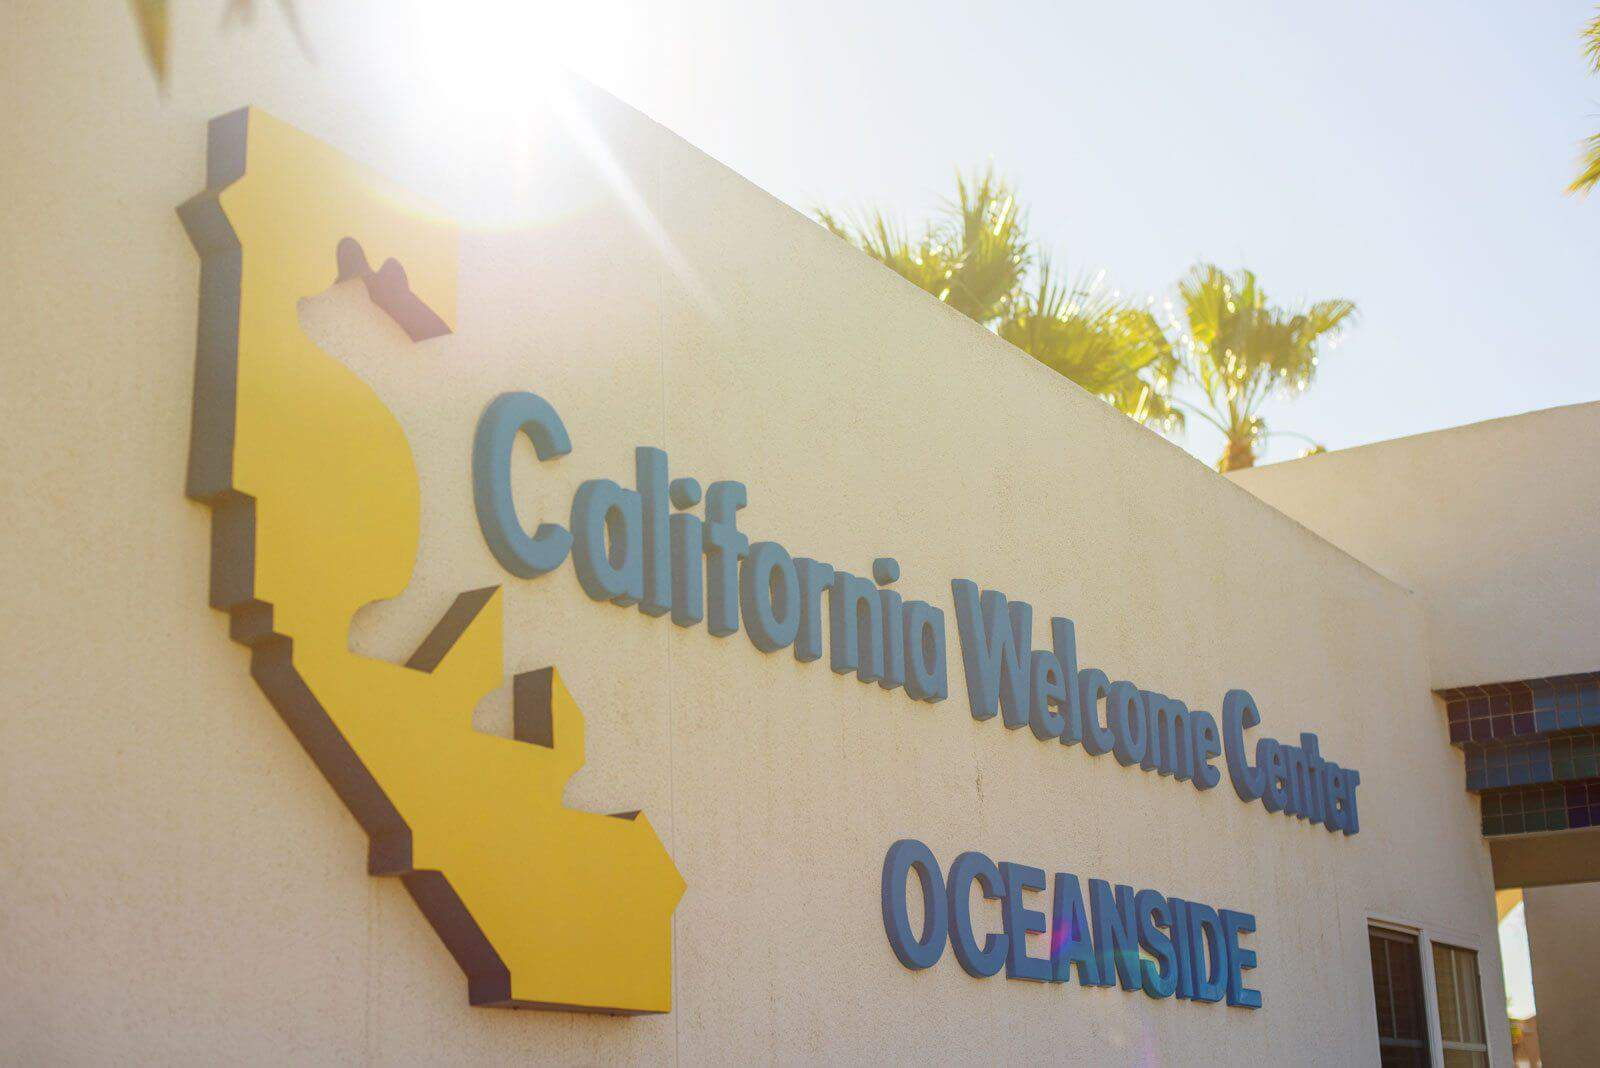 California Welcome Center Oceanside - Oceanside Visitor Center